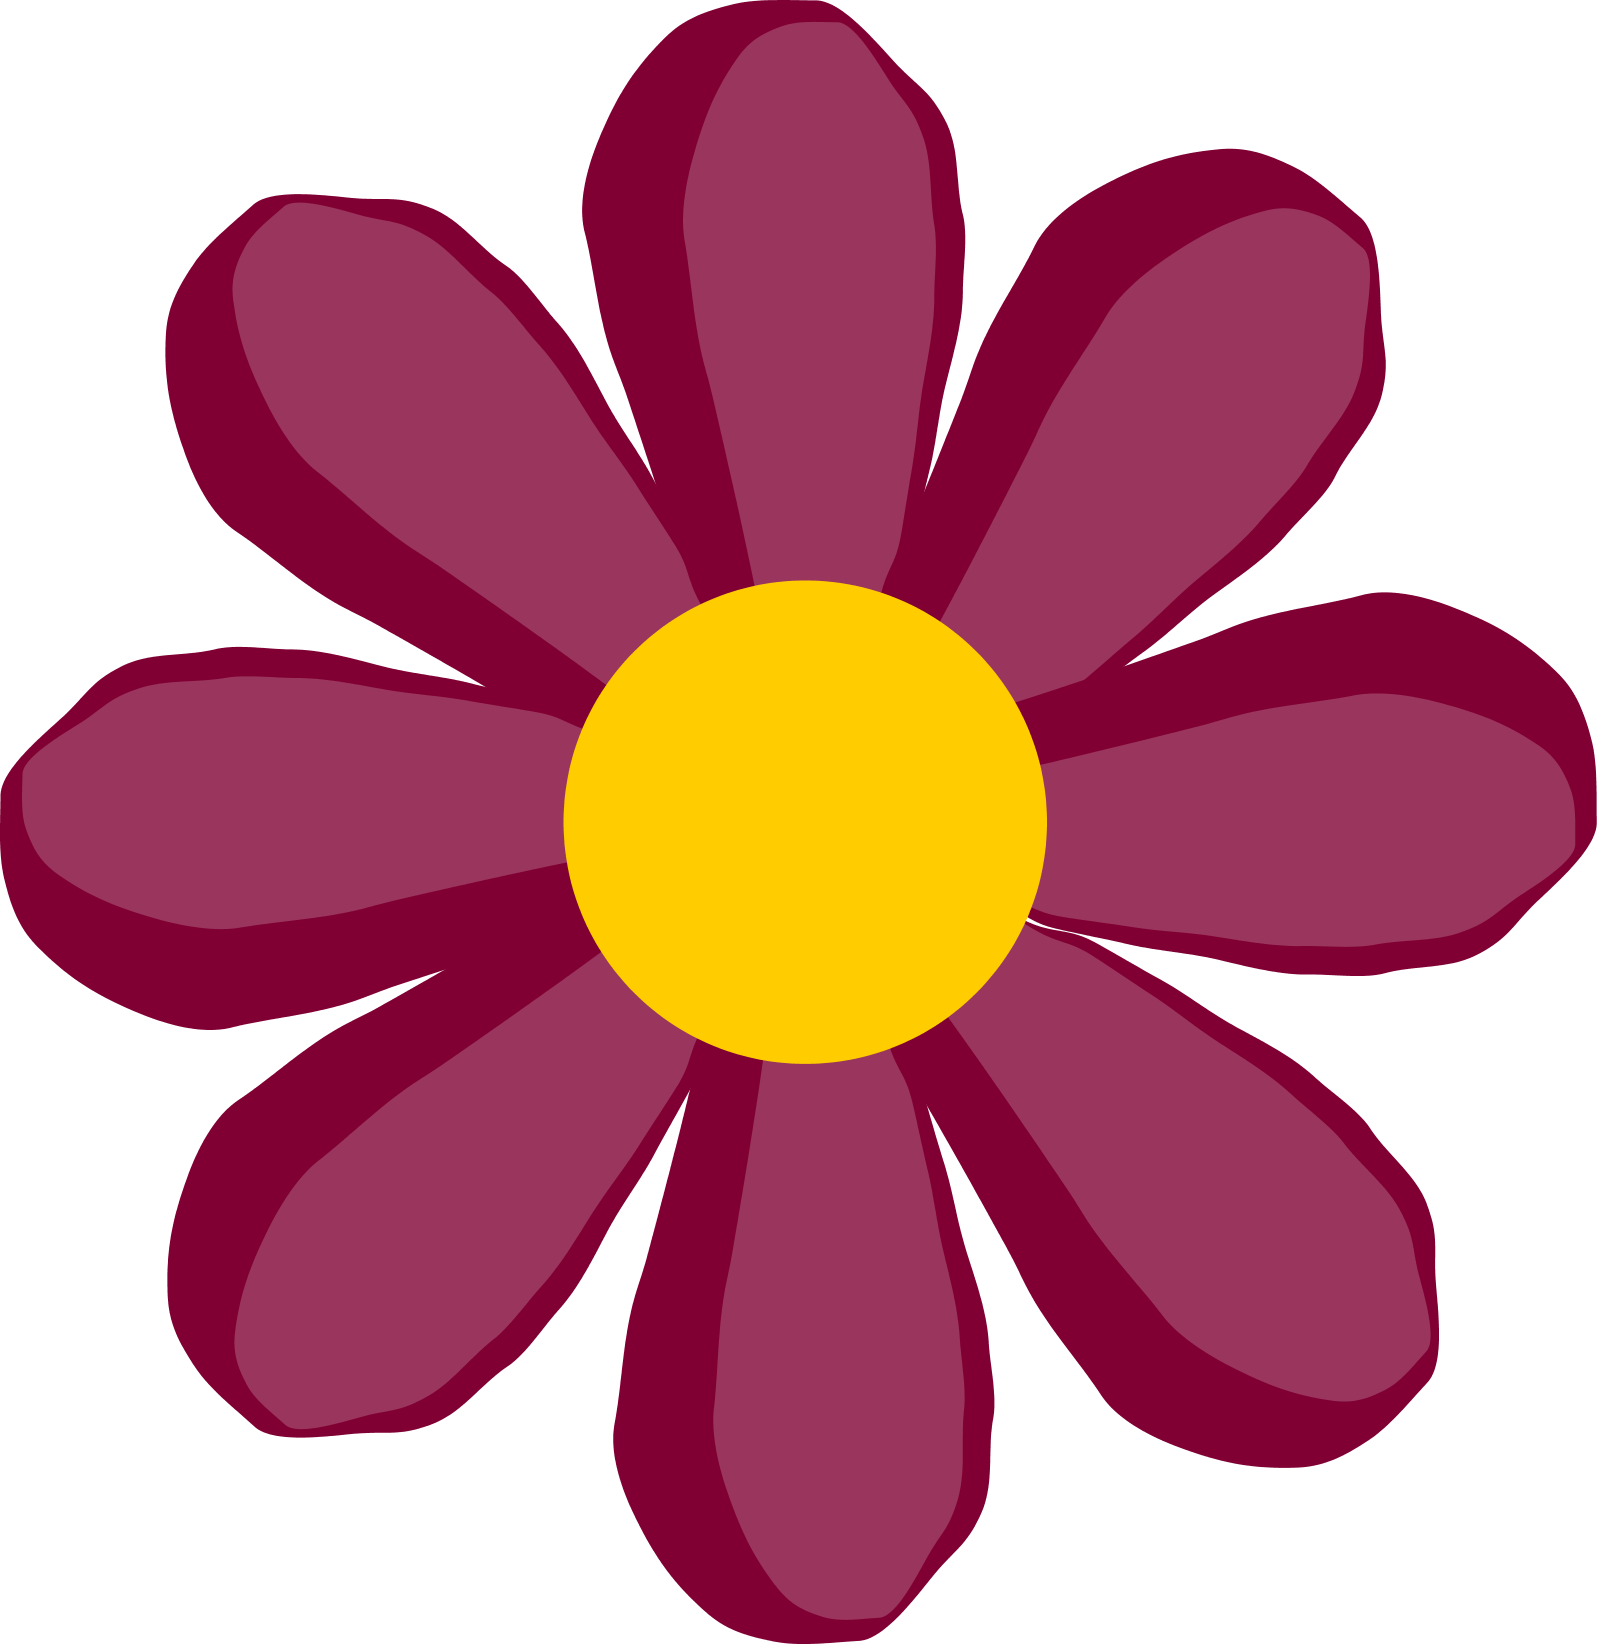 Simple flower clipart clip art library Simple Flower clip art | Clipart Panda - Free Clipart Images clip art library